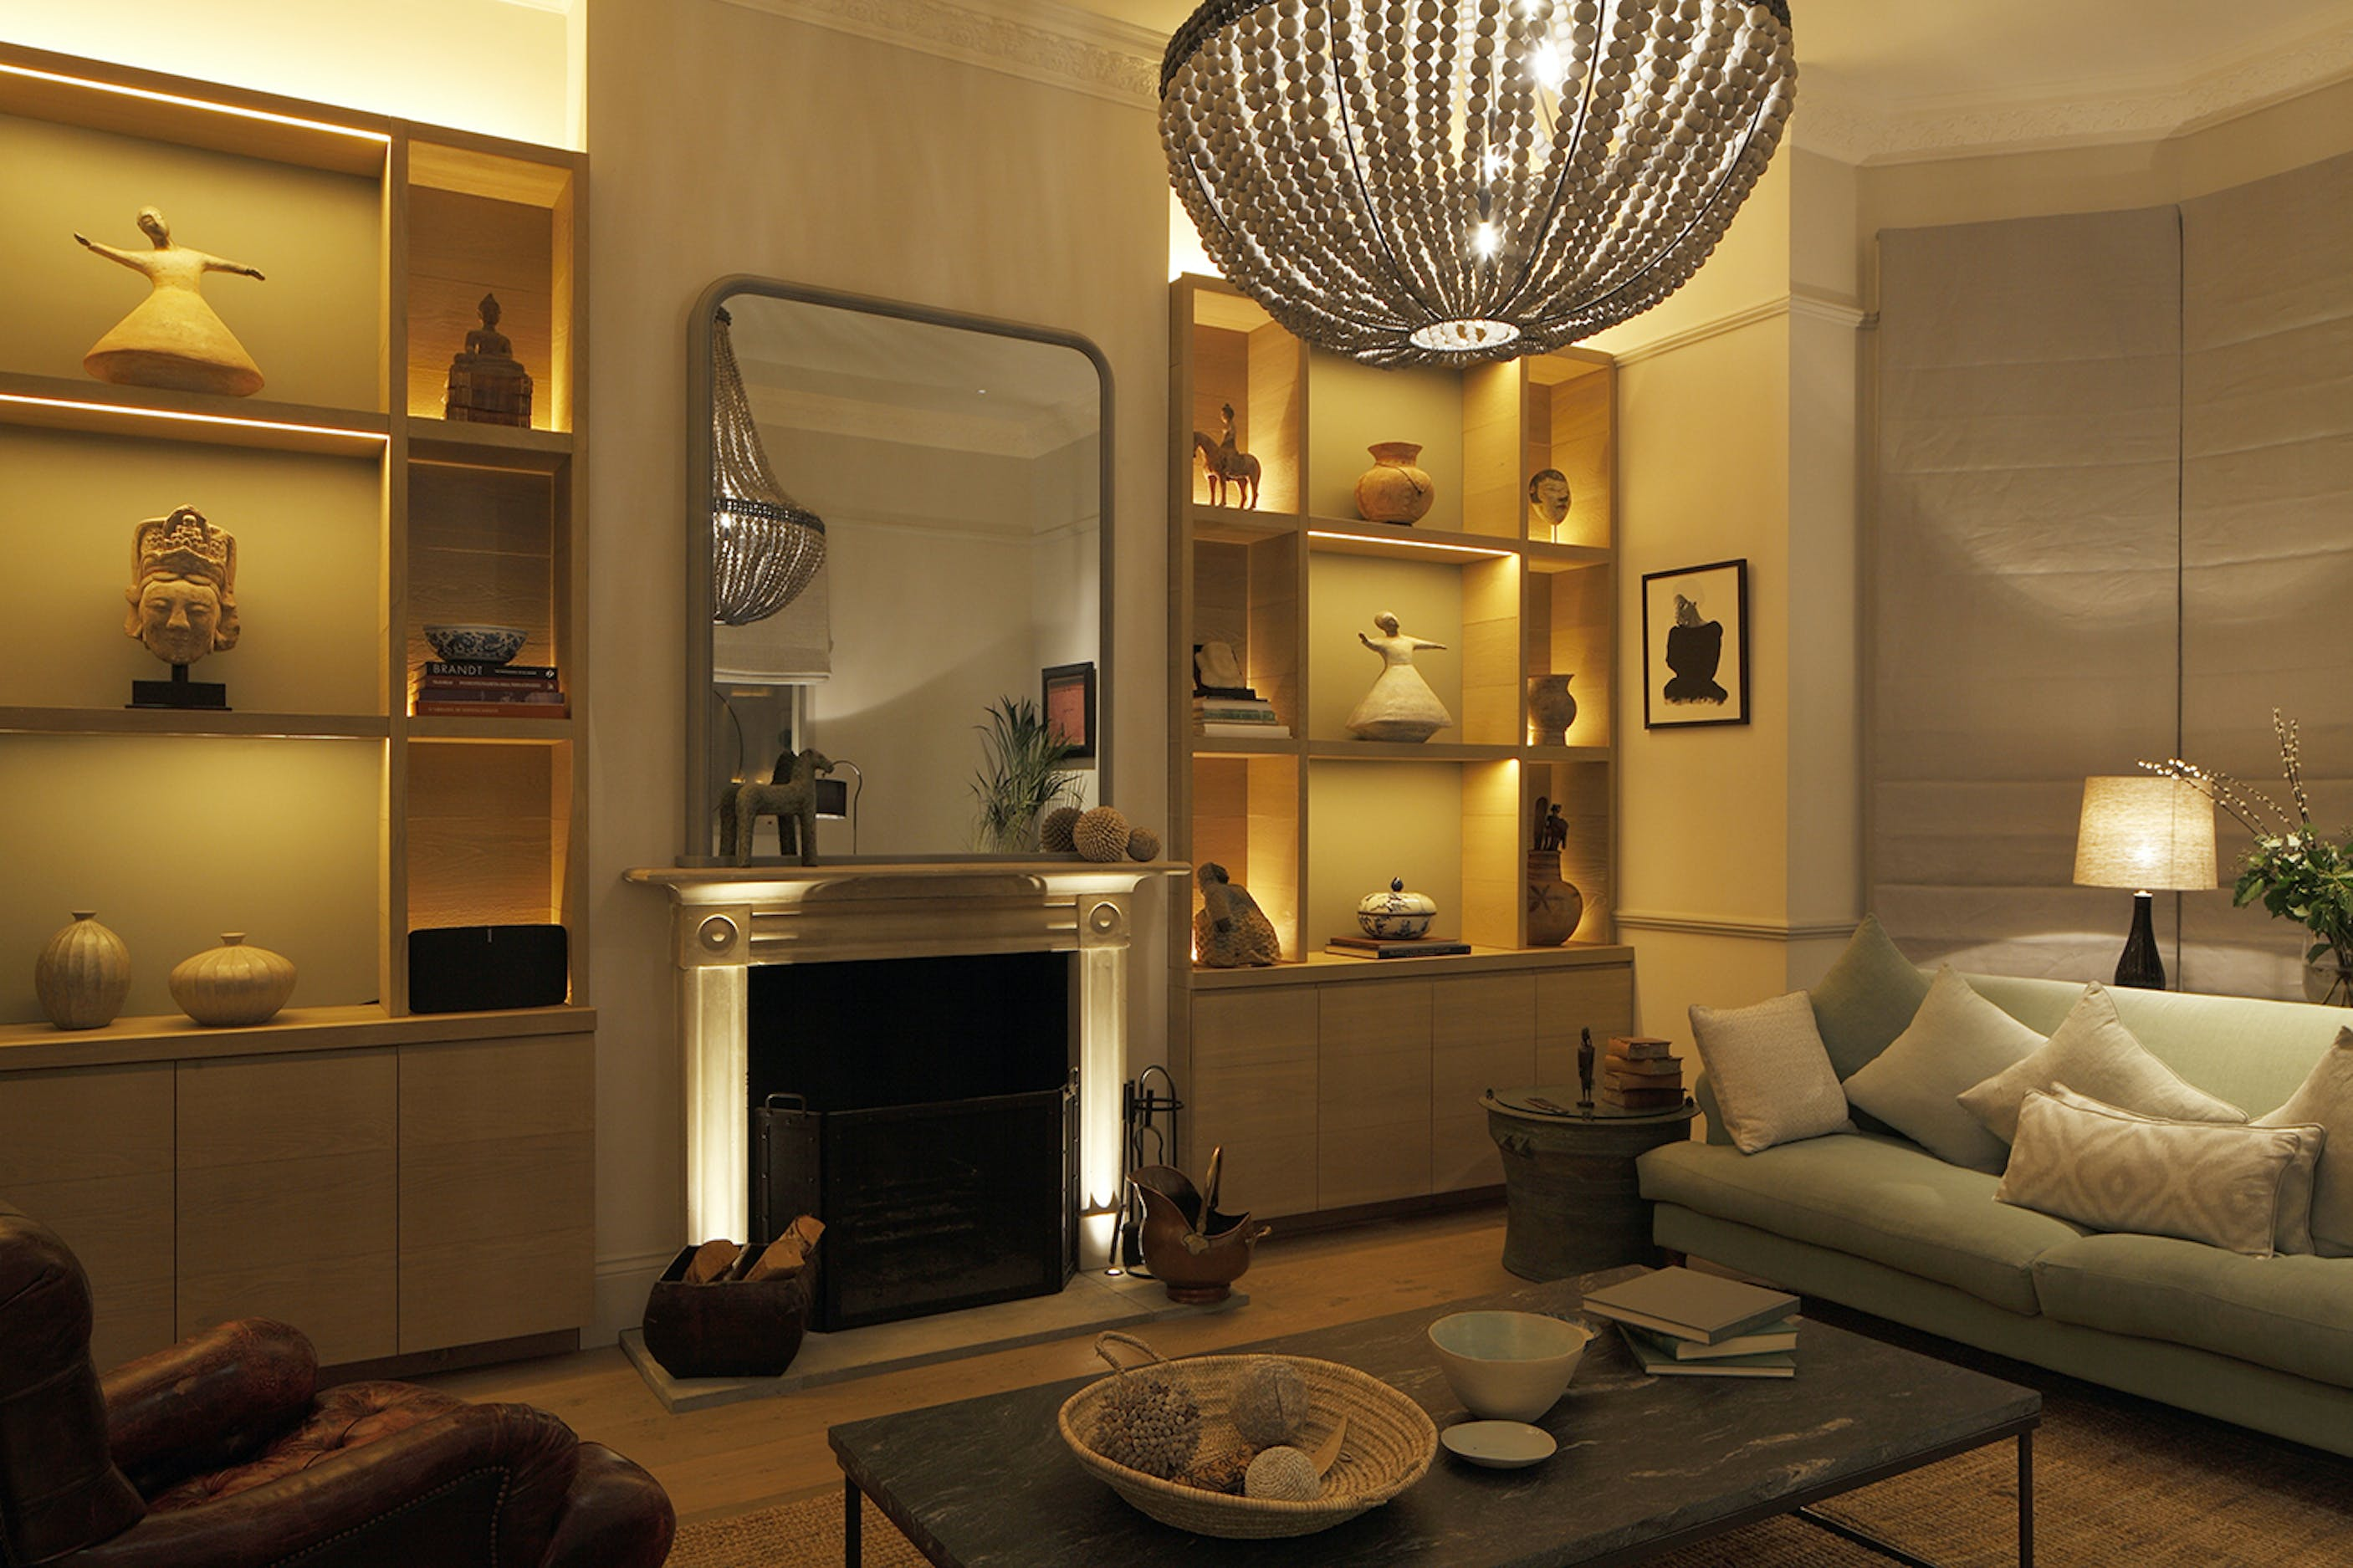 London fireplace and shelving lighting